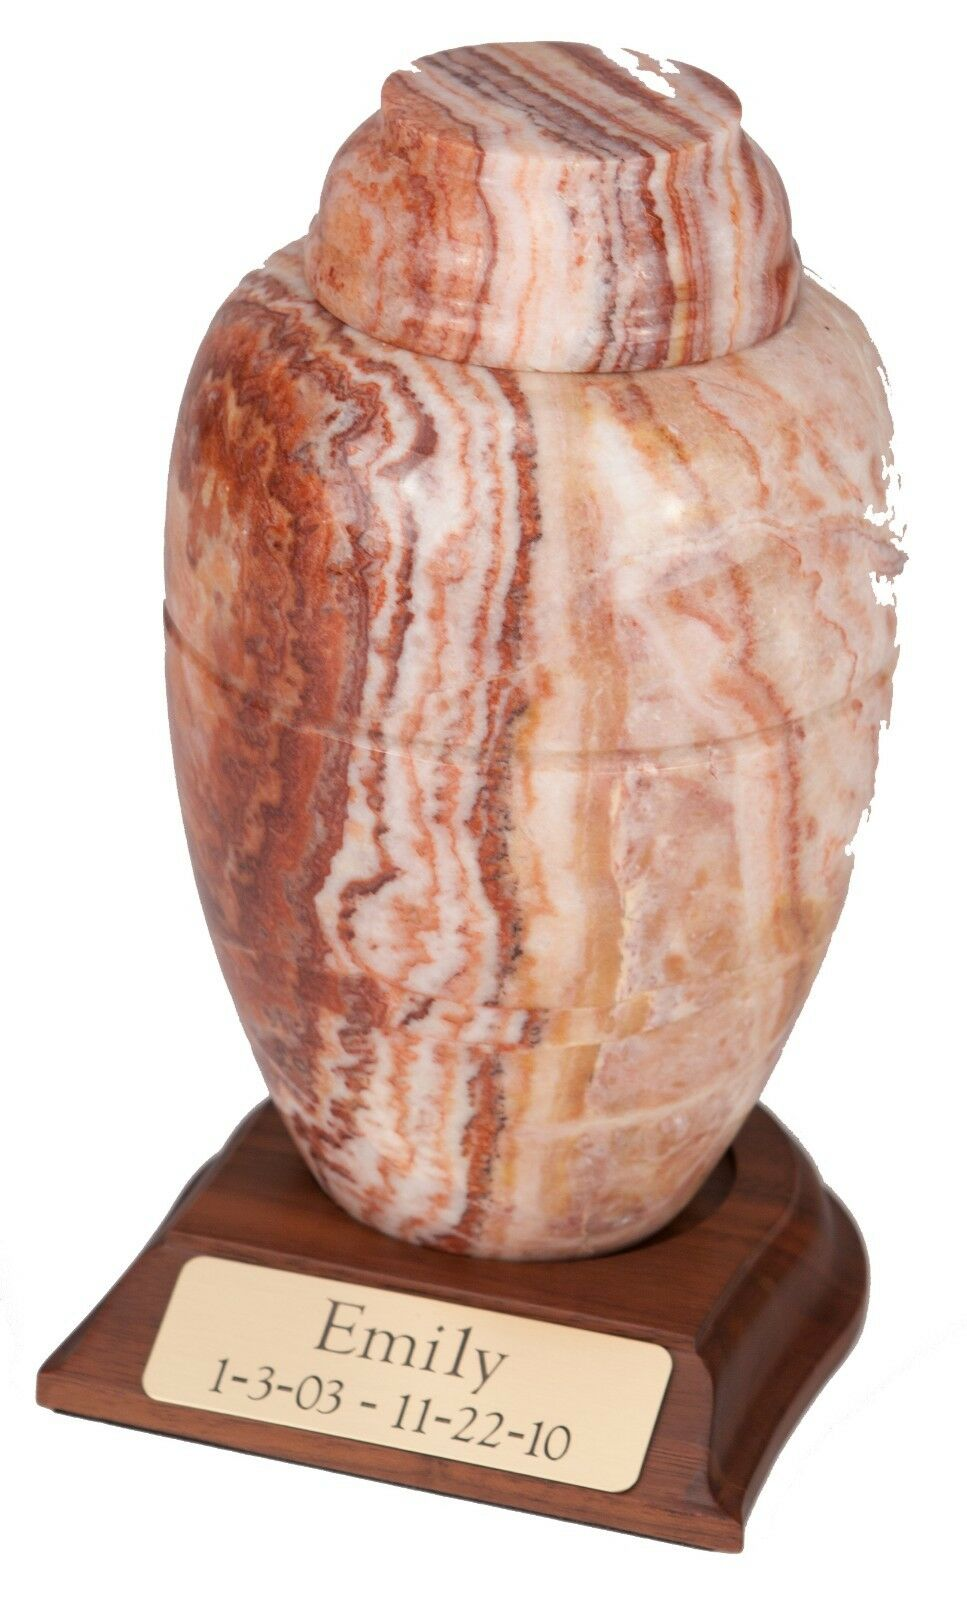 Small/Keepsake 68 Cubic Ins Caramel Marble Vase Urn for Ashes w/Engravable Base